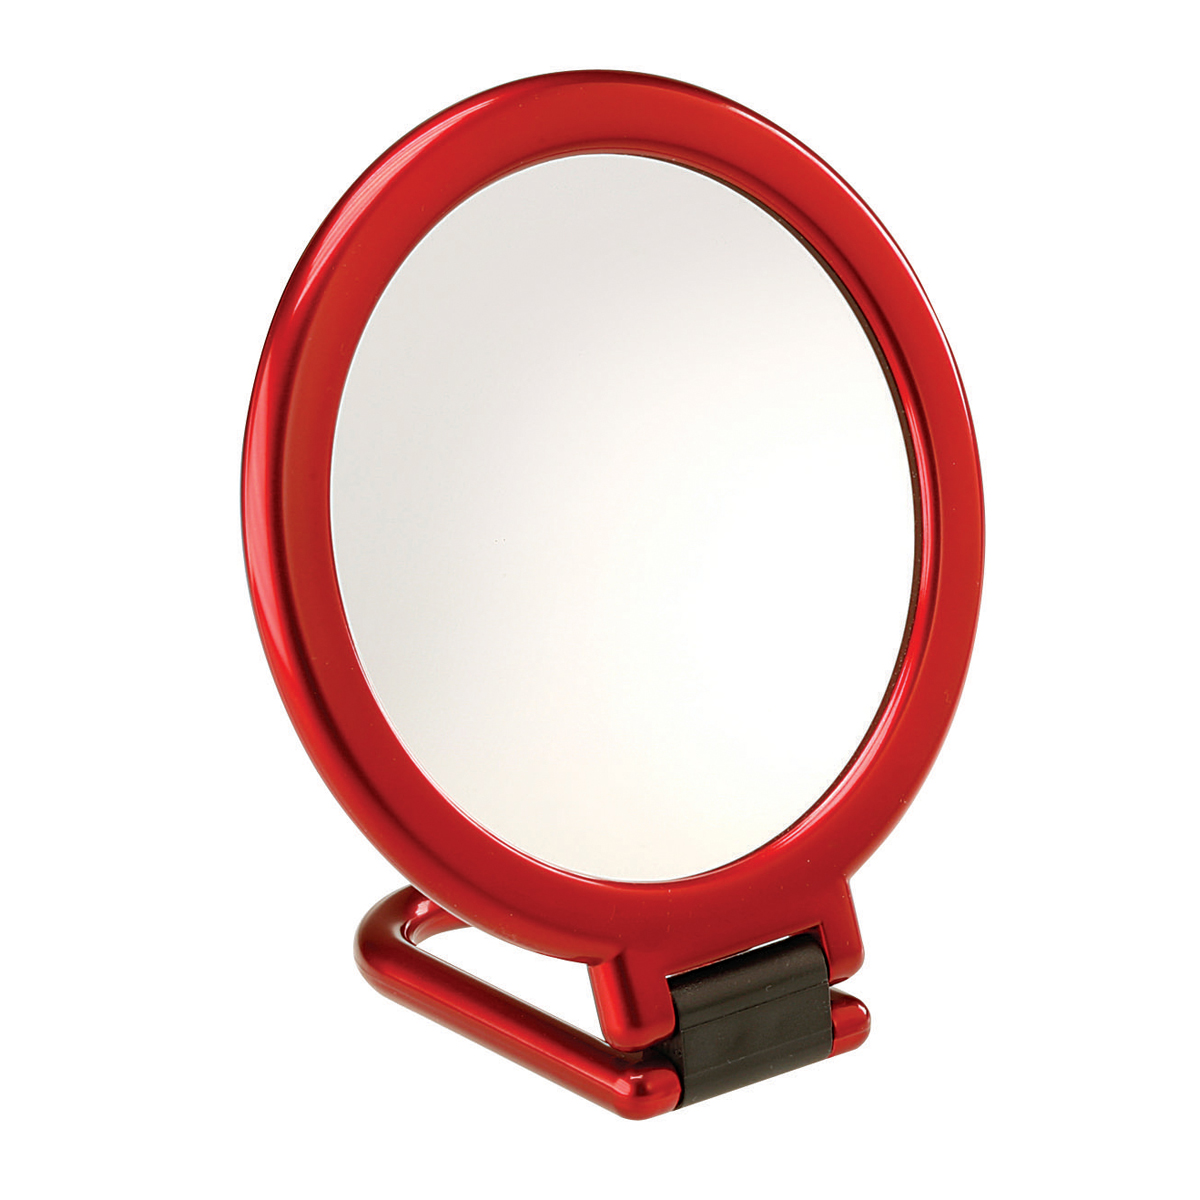 1200 961 13 red - Red Devil' 3x Magnification Folding Travel Mirror - 96113RED